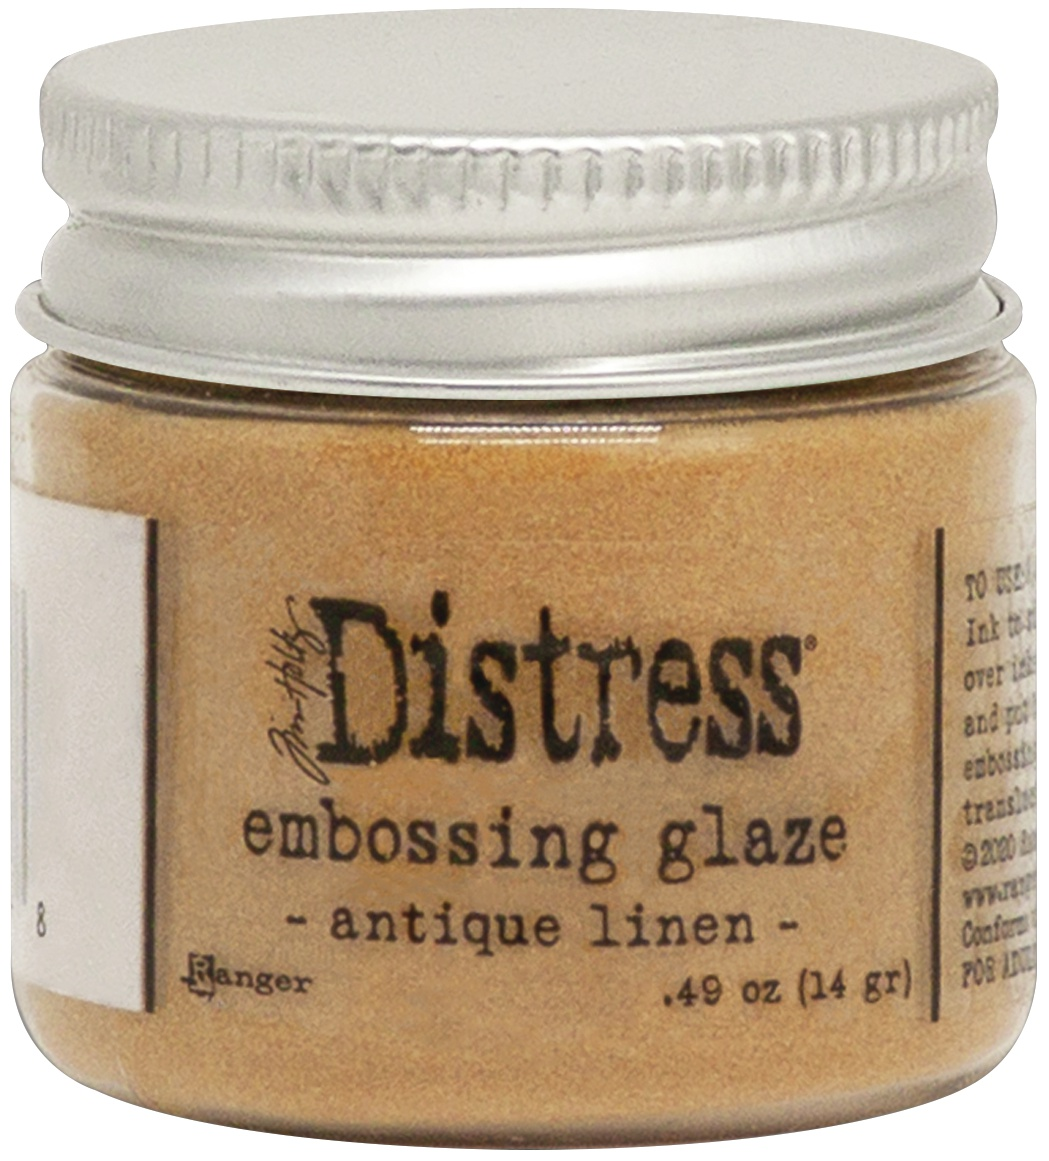 Tim Holtz Distress Embossing Glaze -Antique Linen